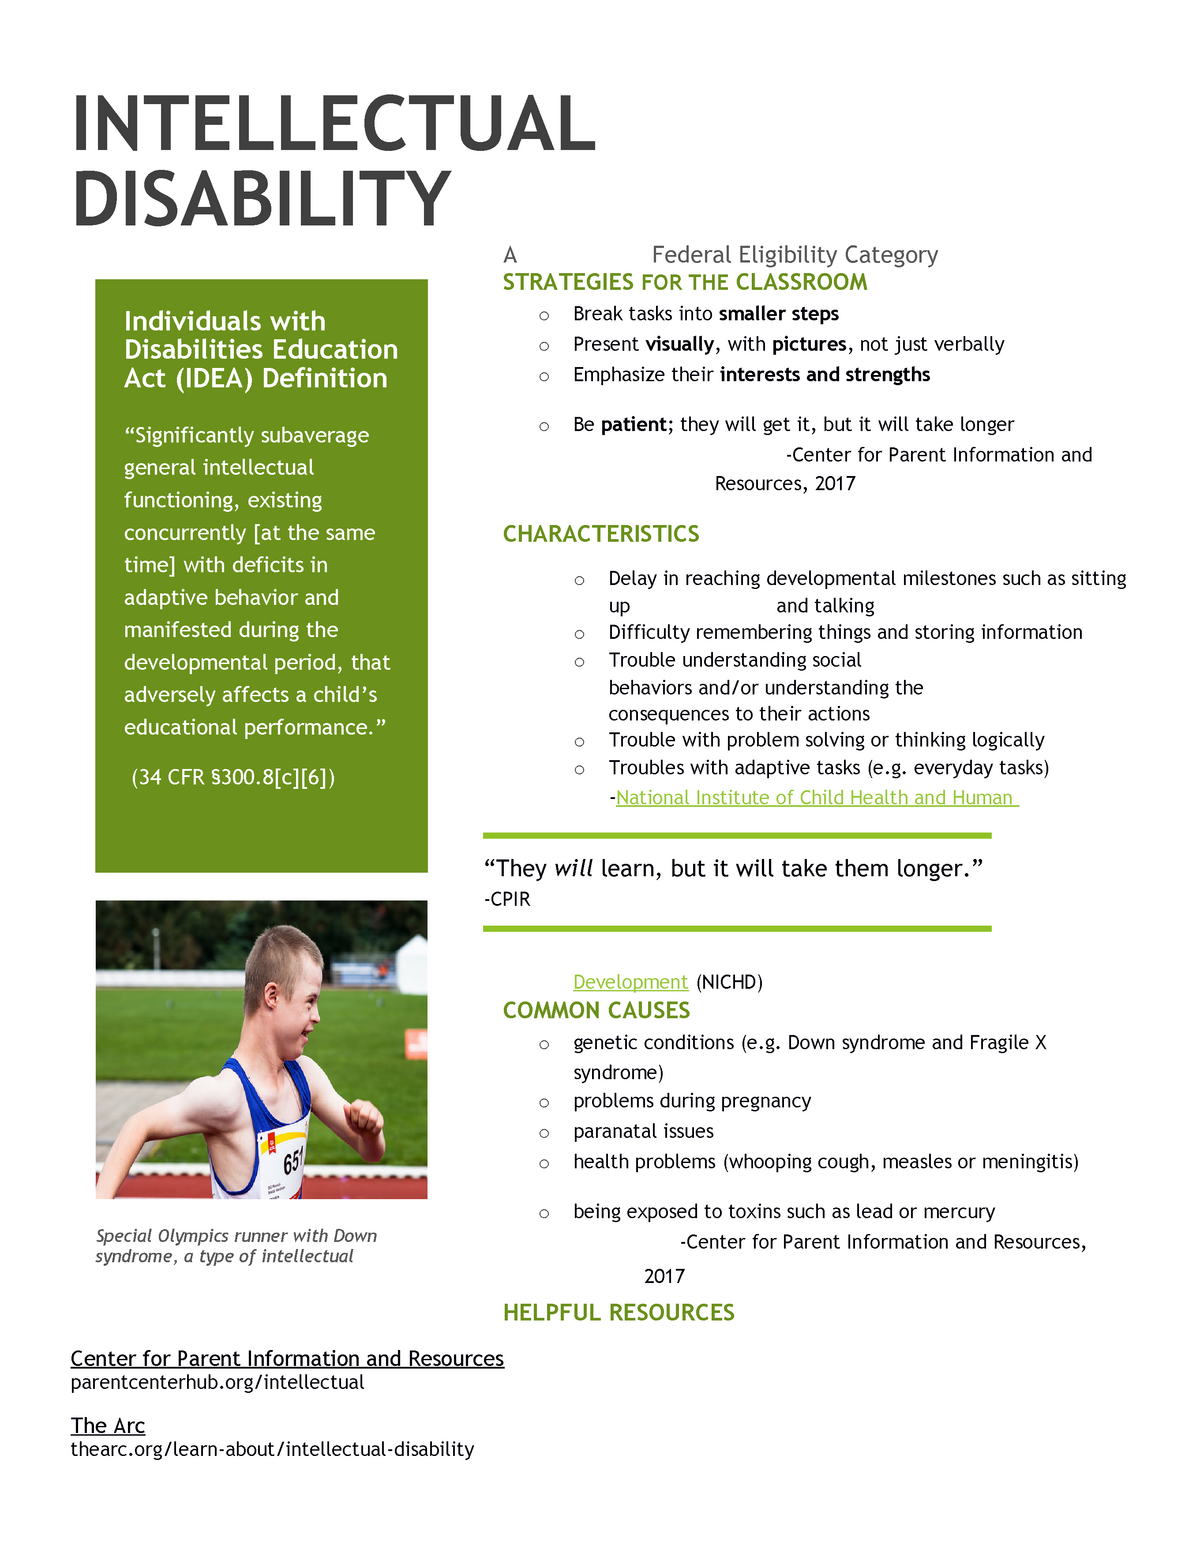 Intellectual Disability Handout - SPED 120: Introduction to